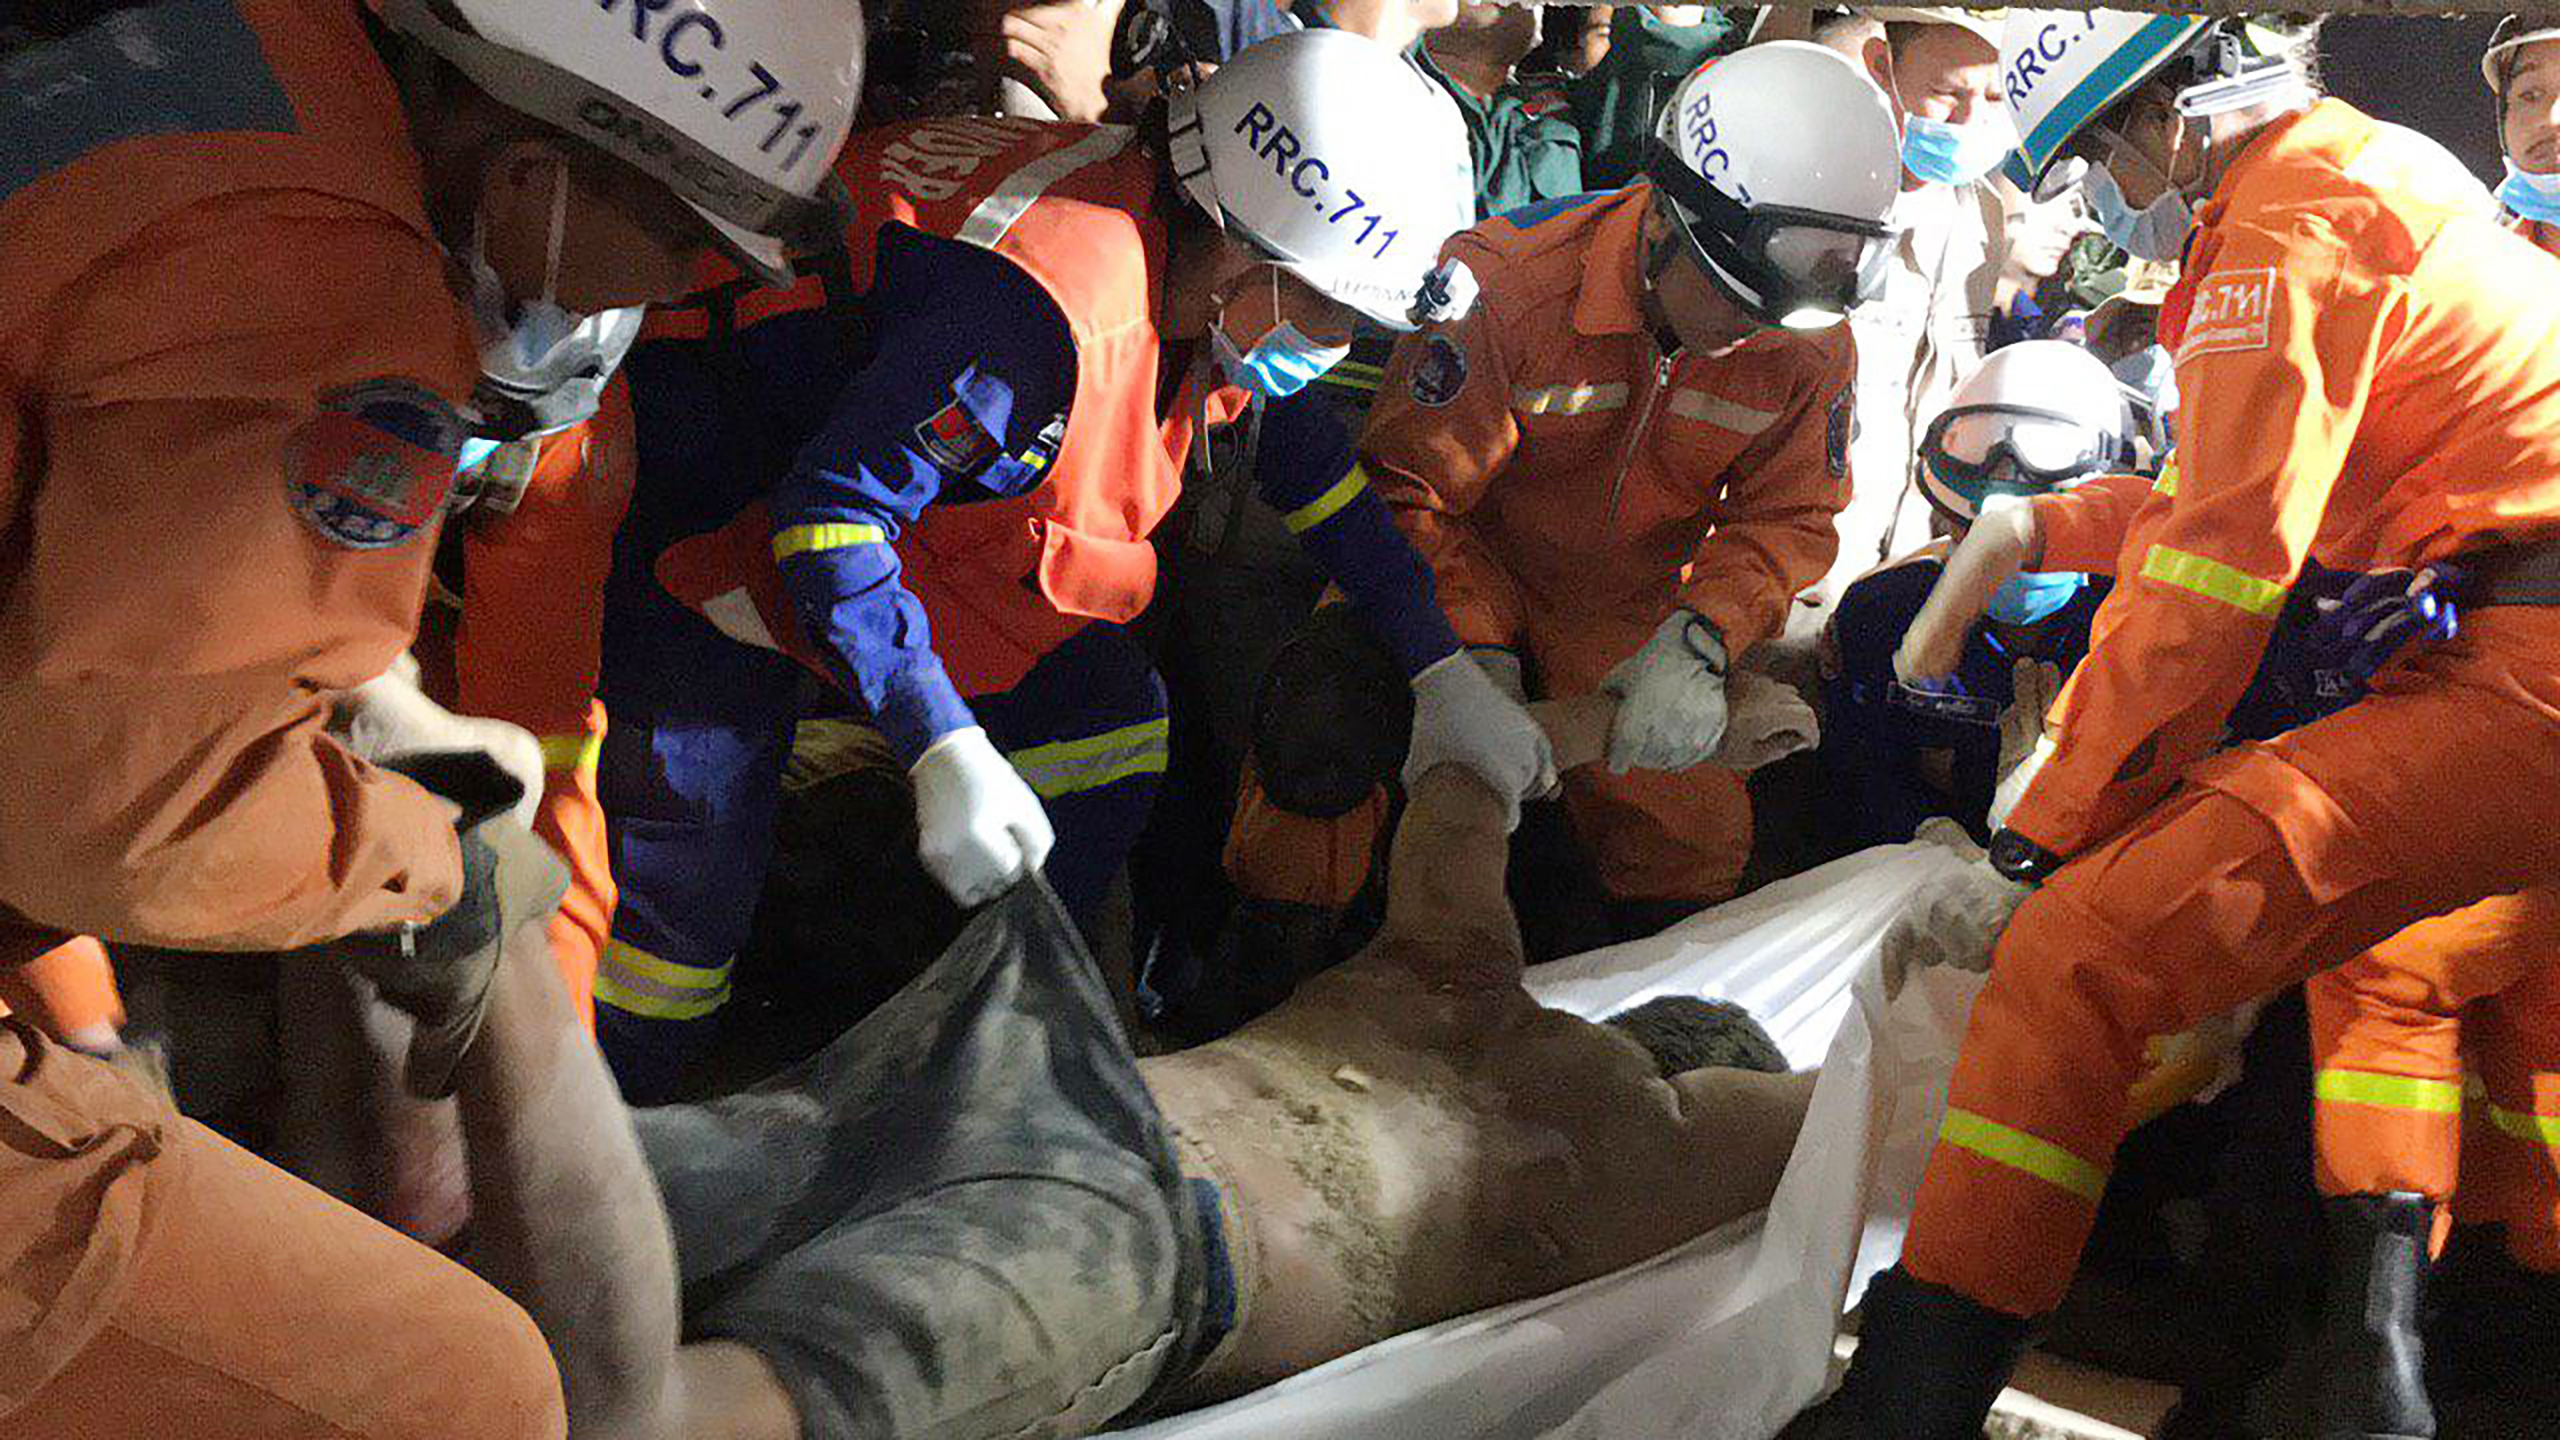 Search in Cambodia resumes after building collapse kills 5